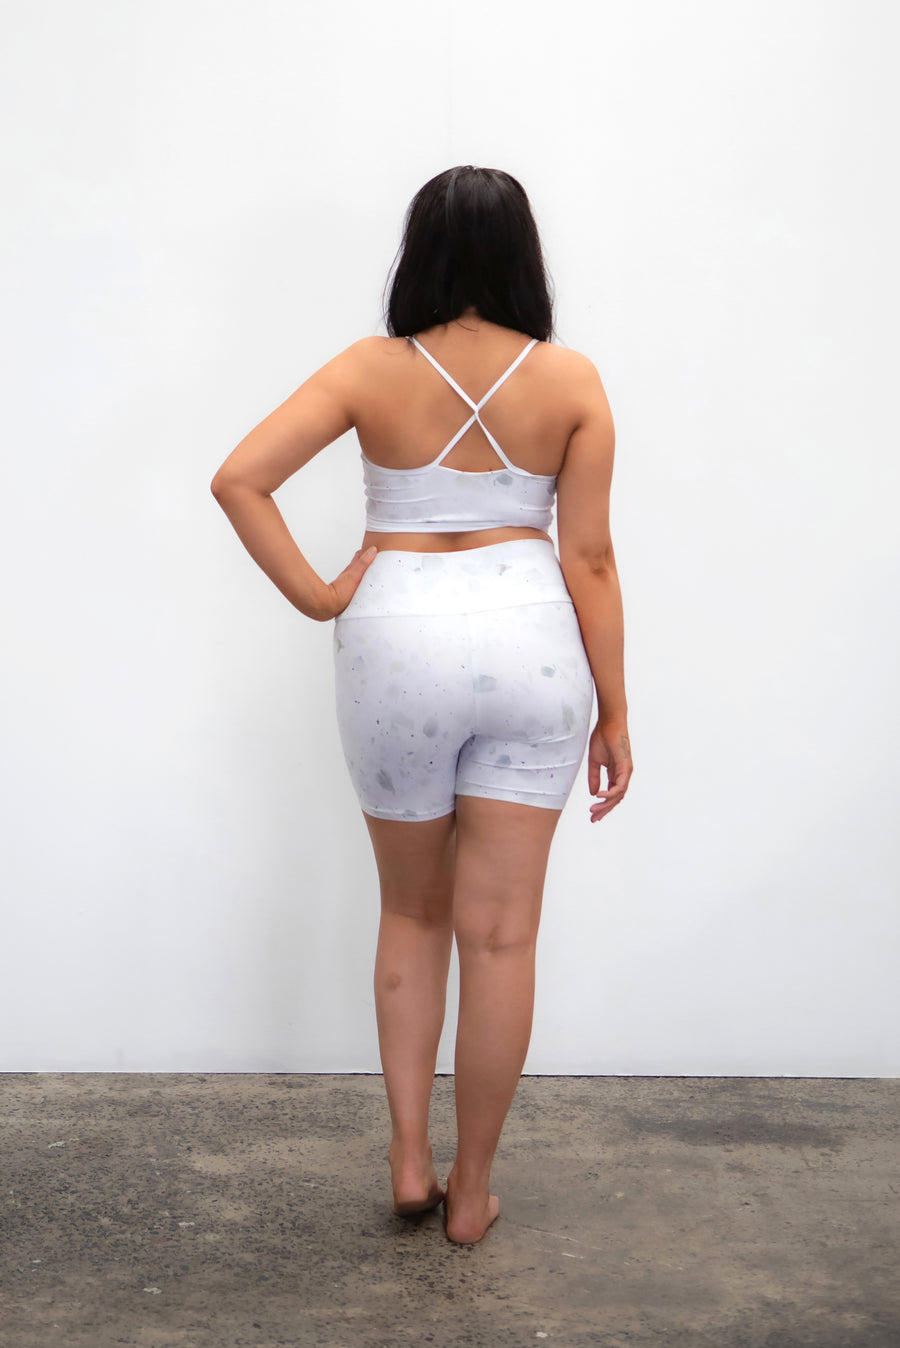 Ethical and sustainable activewear, yogawear for women xxs to plus size, recycled ECONYL bike shorts, yoga shorts ethically made in Australia.